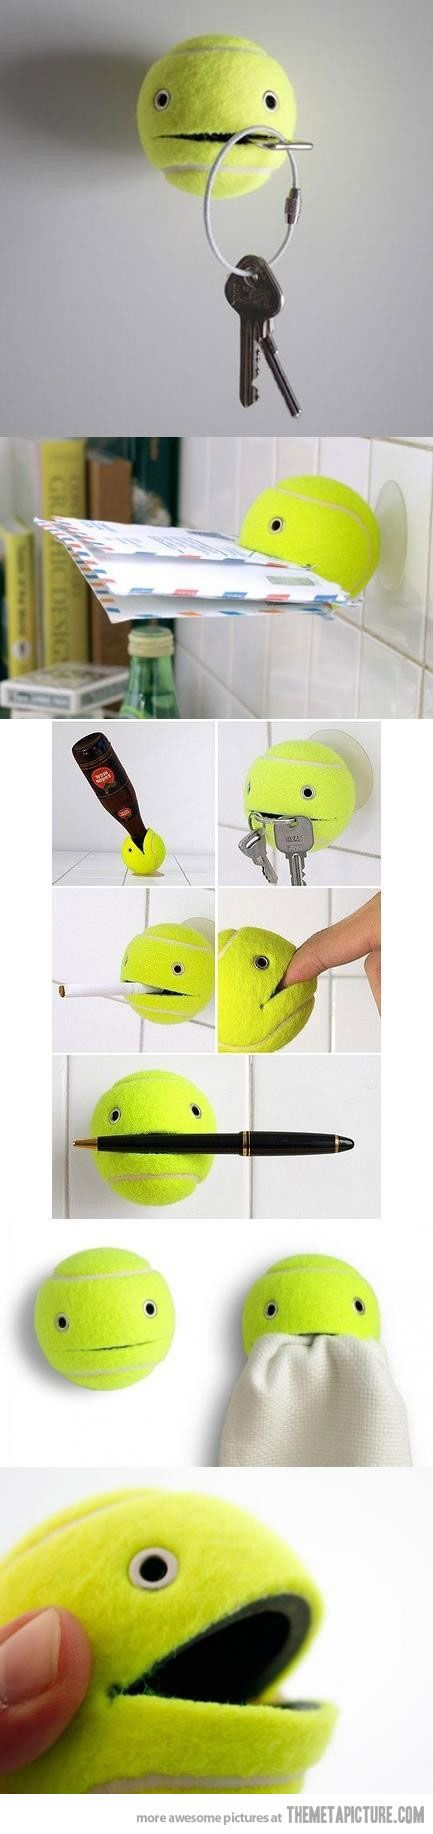 "Useless crafting idea #7,892, ""Useful"" tennis ball. Can you hold my keys? This towel? That cigarette. Hold my beer, but don't drink it. Heh heh, pull my finger."